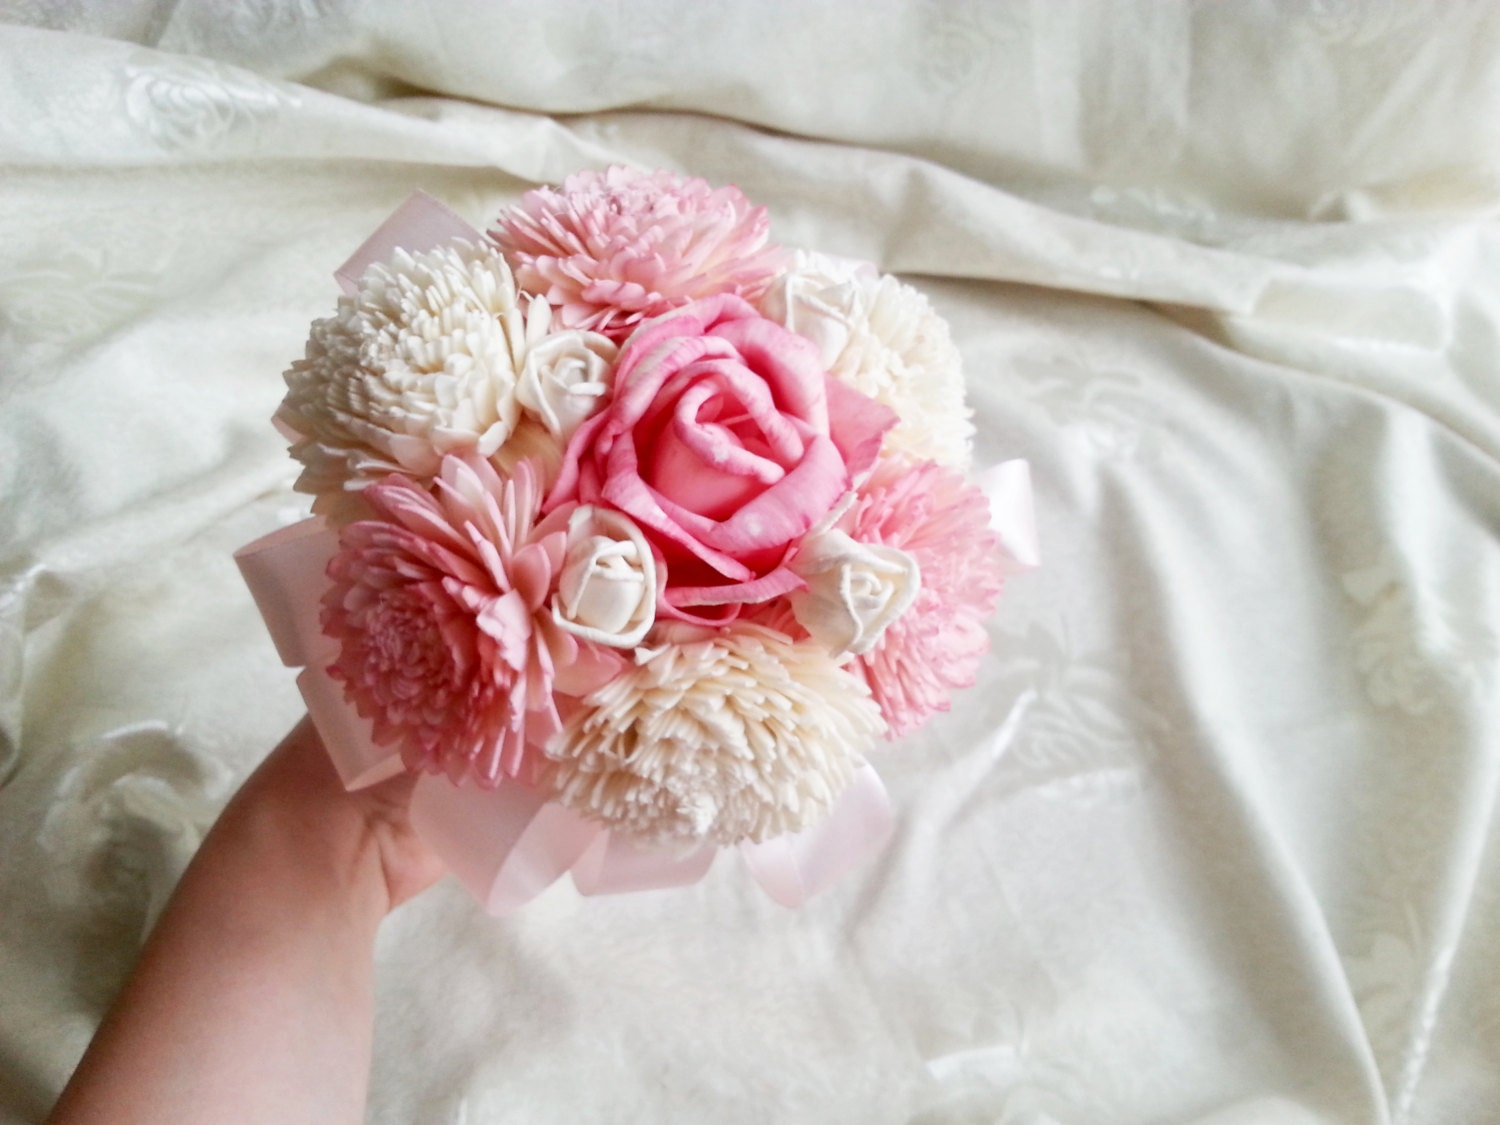 Small sola flowers pink bouquet wedding bridesmaid flower girl wand ...